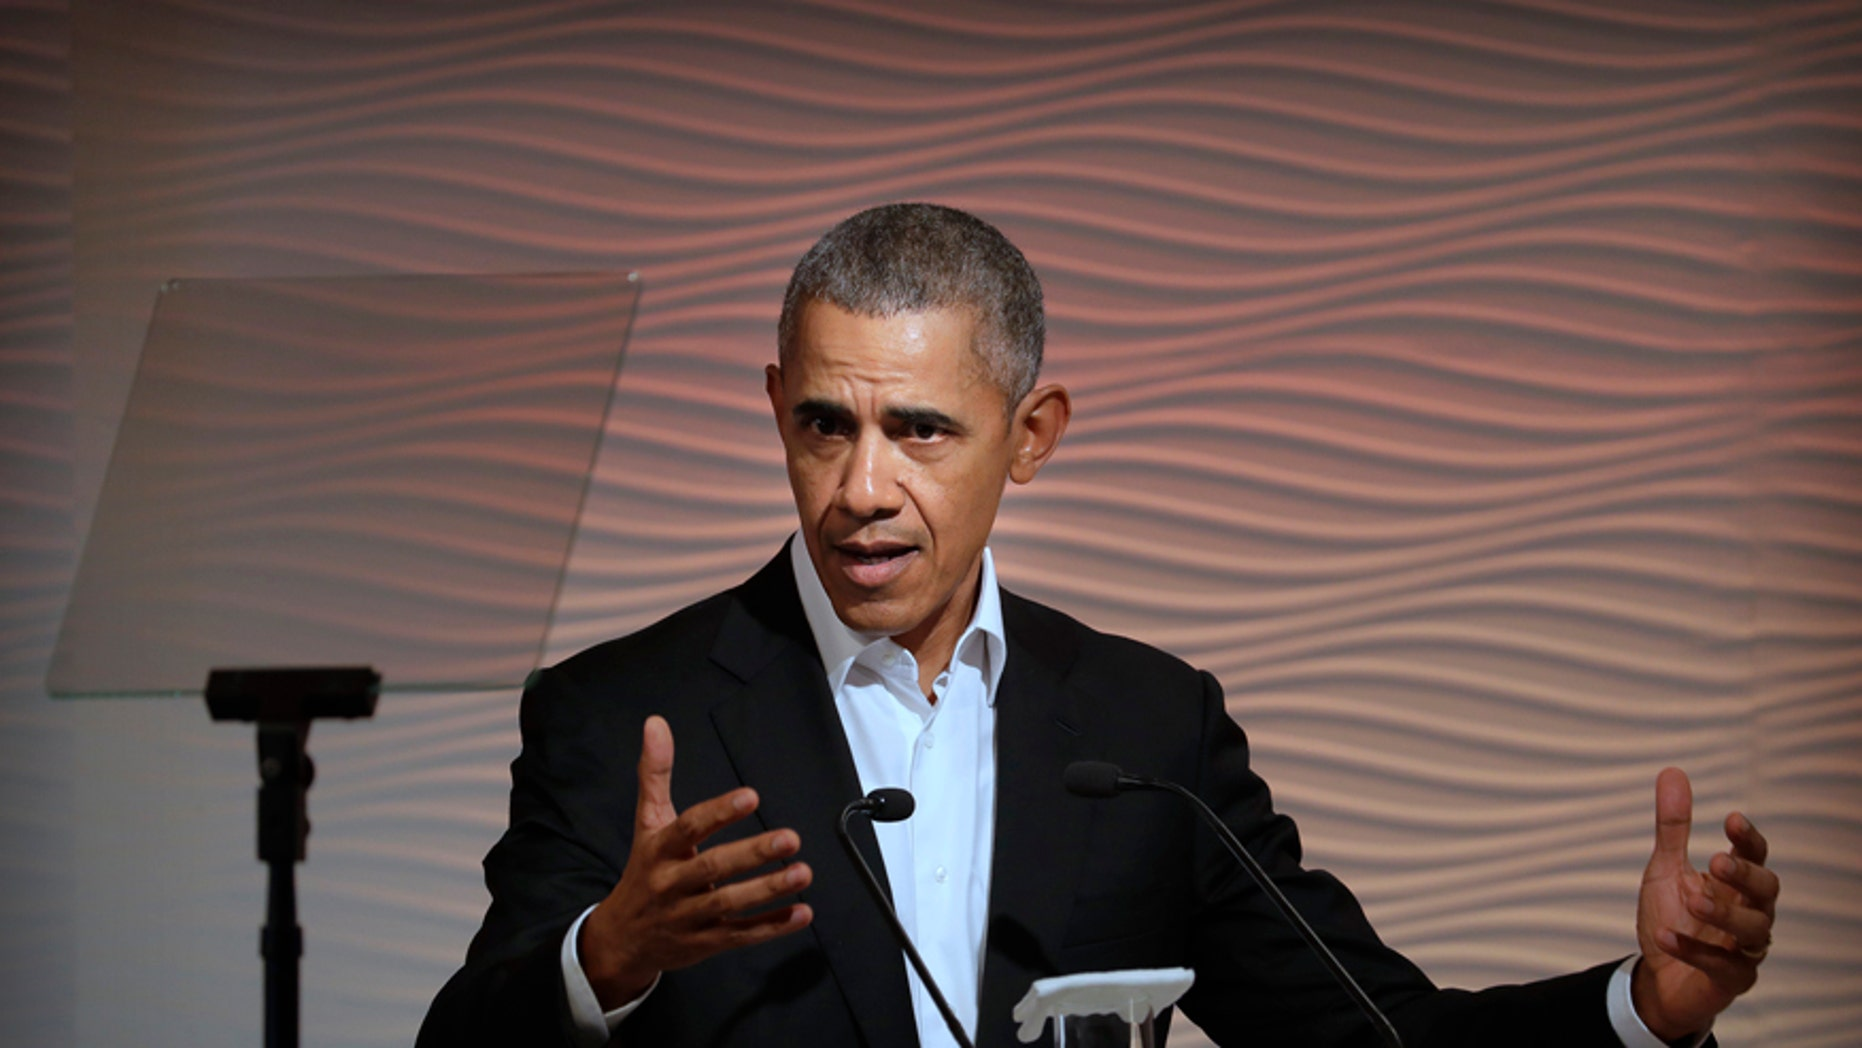 Former U.S. President Barack Obama speaks during a leadership summit in New Delhi, India, Friday, Dec. 1, 2017. Obama was one of the keynote speakers at the event organized by the Hindustan Times newspaper.(AP Photo/Manish Swarup)